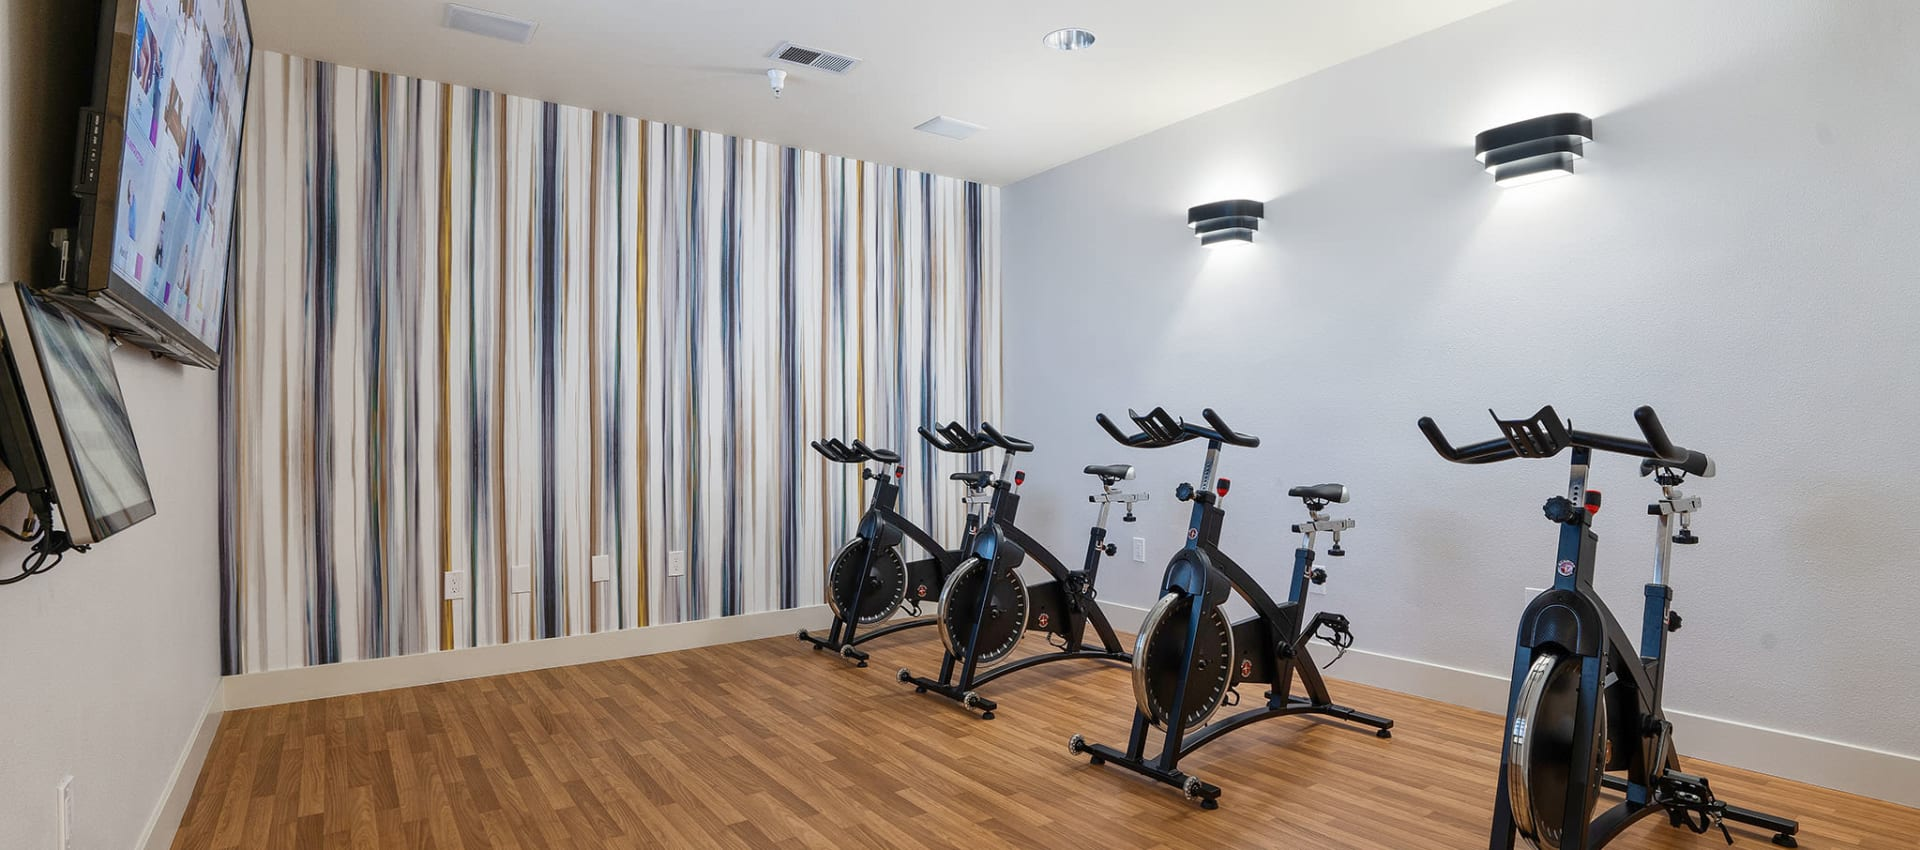 Spin Bike Room at Park Central in Concord, California